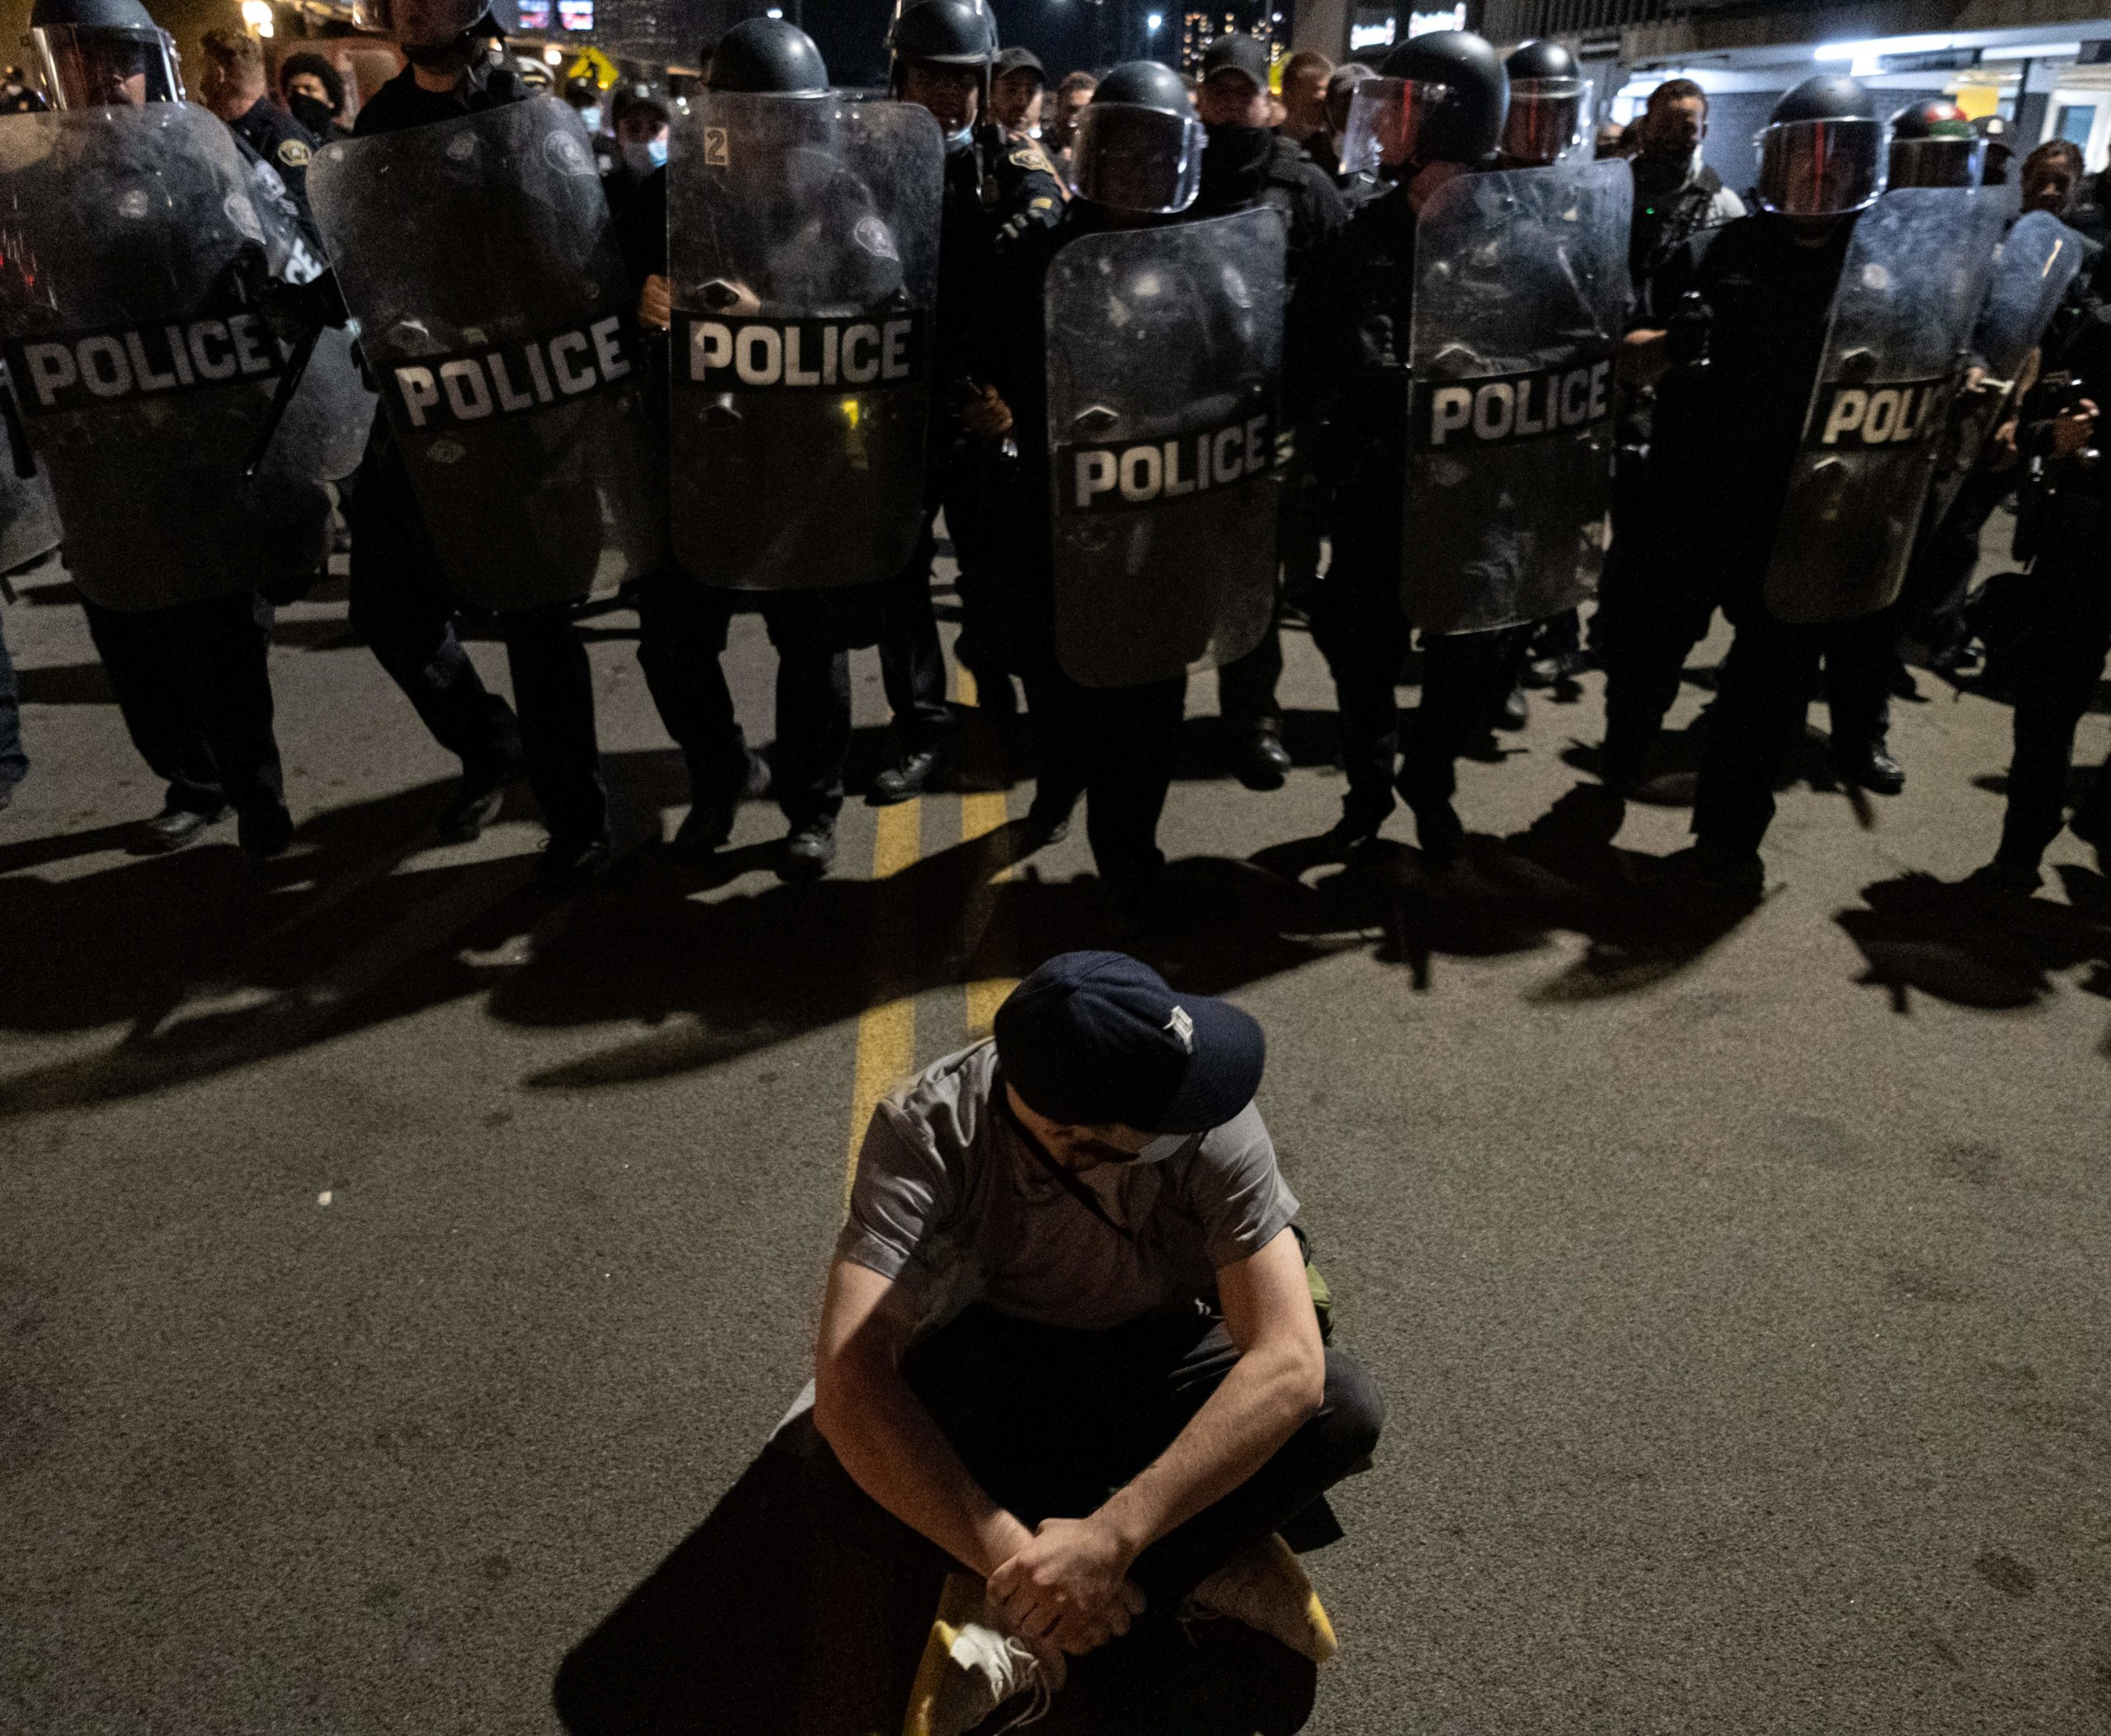 A protester kneels with his back to the US riot police in the city of Detroit, Michigan, on May 29, 2020, over the death of George Floyd, a black man who died after a white policeman knelt on his neck for several minutes. - Violent protests erupted across the United States late on May 29, over the death of a handcuffed black man in police custody, with murder charges laid against the arresting Minneapolis officer failing to quell boiling anger. (SETH HERALD/AFP via Getty Images)